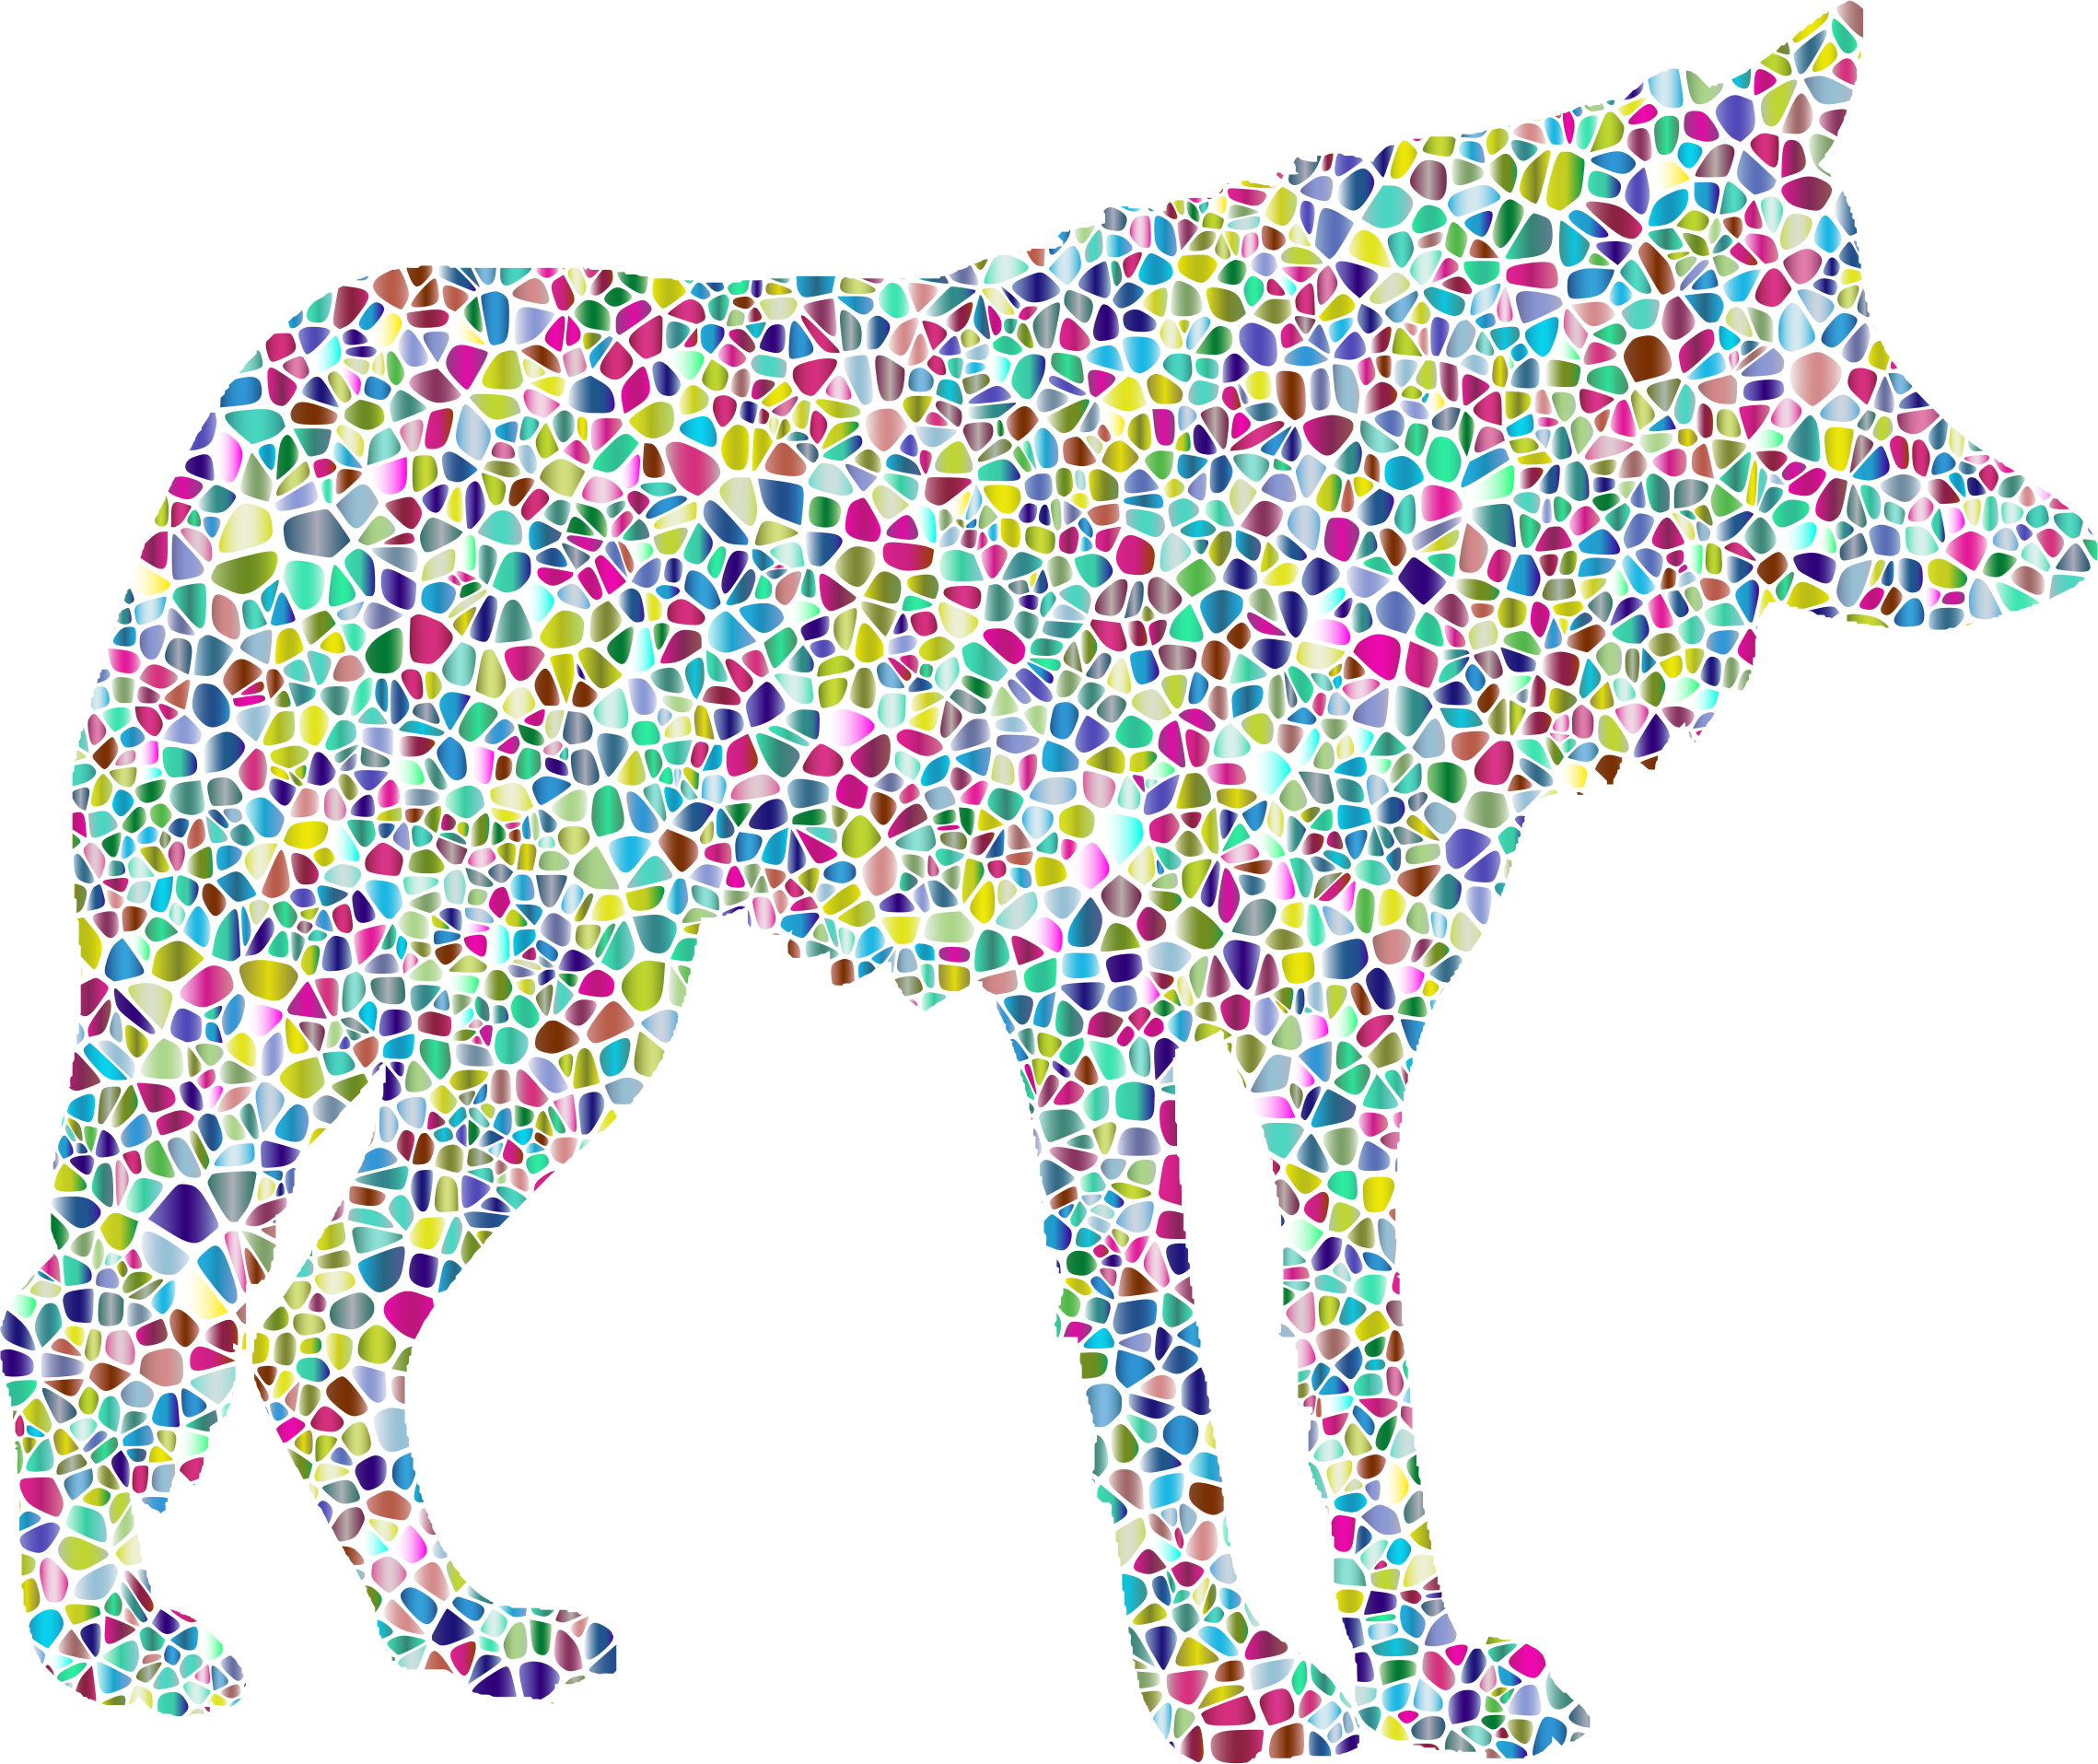 Polyprismatic Tiled Wolf Silhouette 2 by GDJ